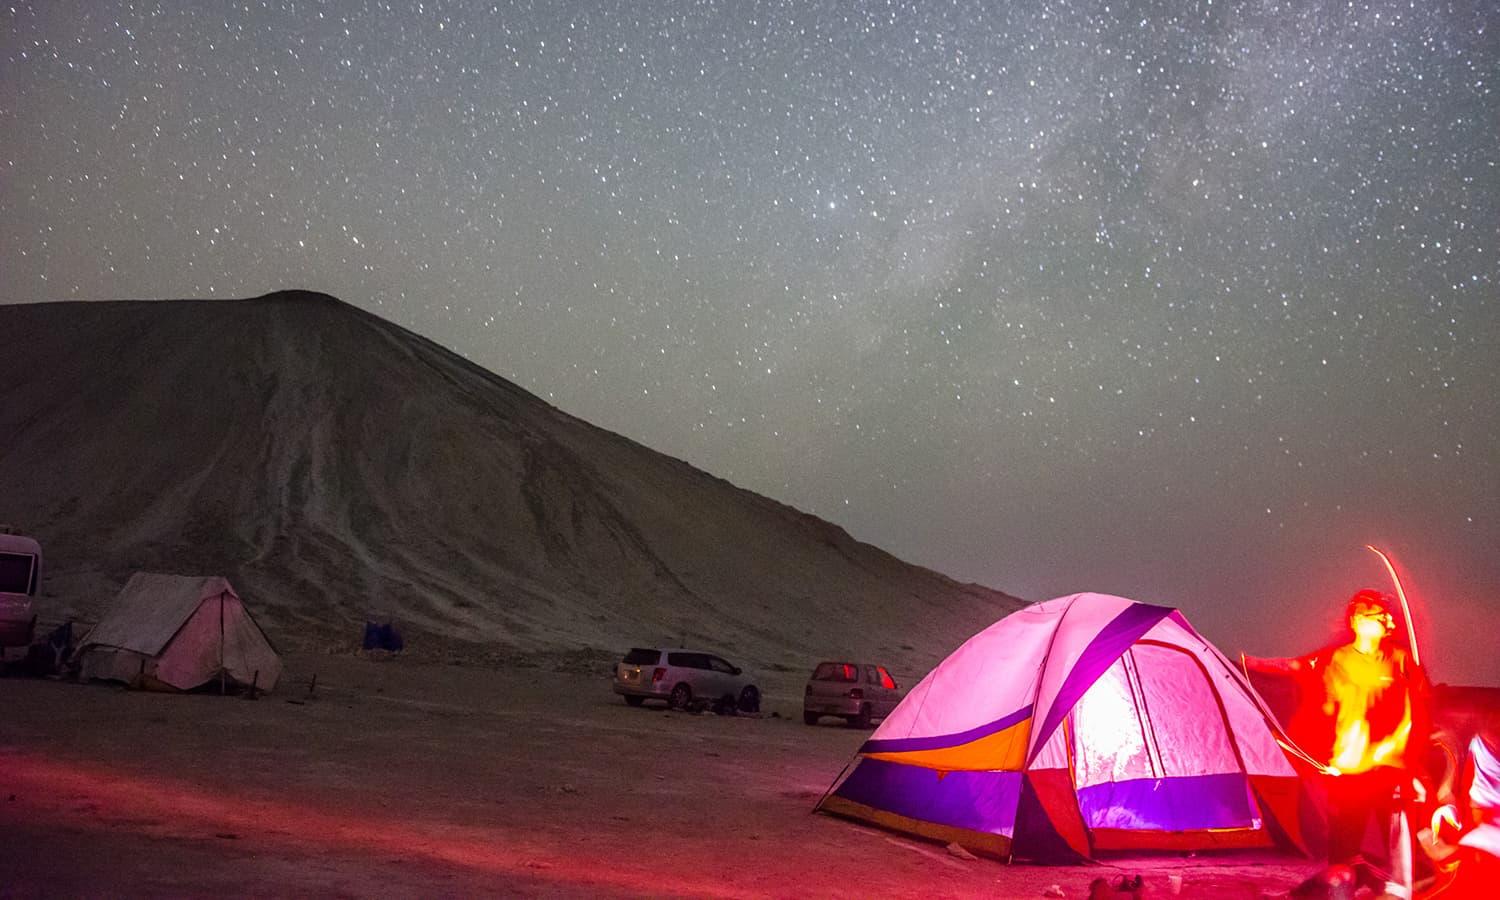 Camping under the stars was an unforgettable experience. (Photo credit: Ramiz Qureshi)